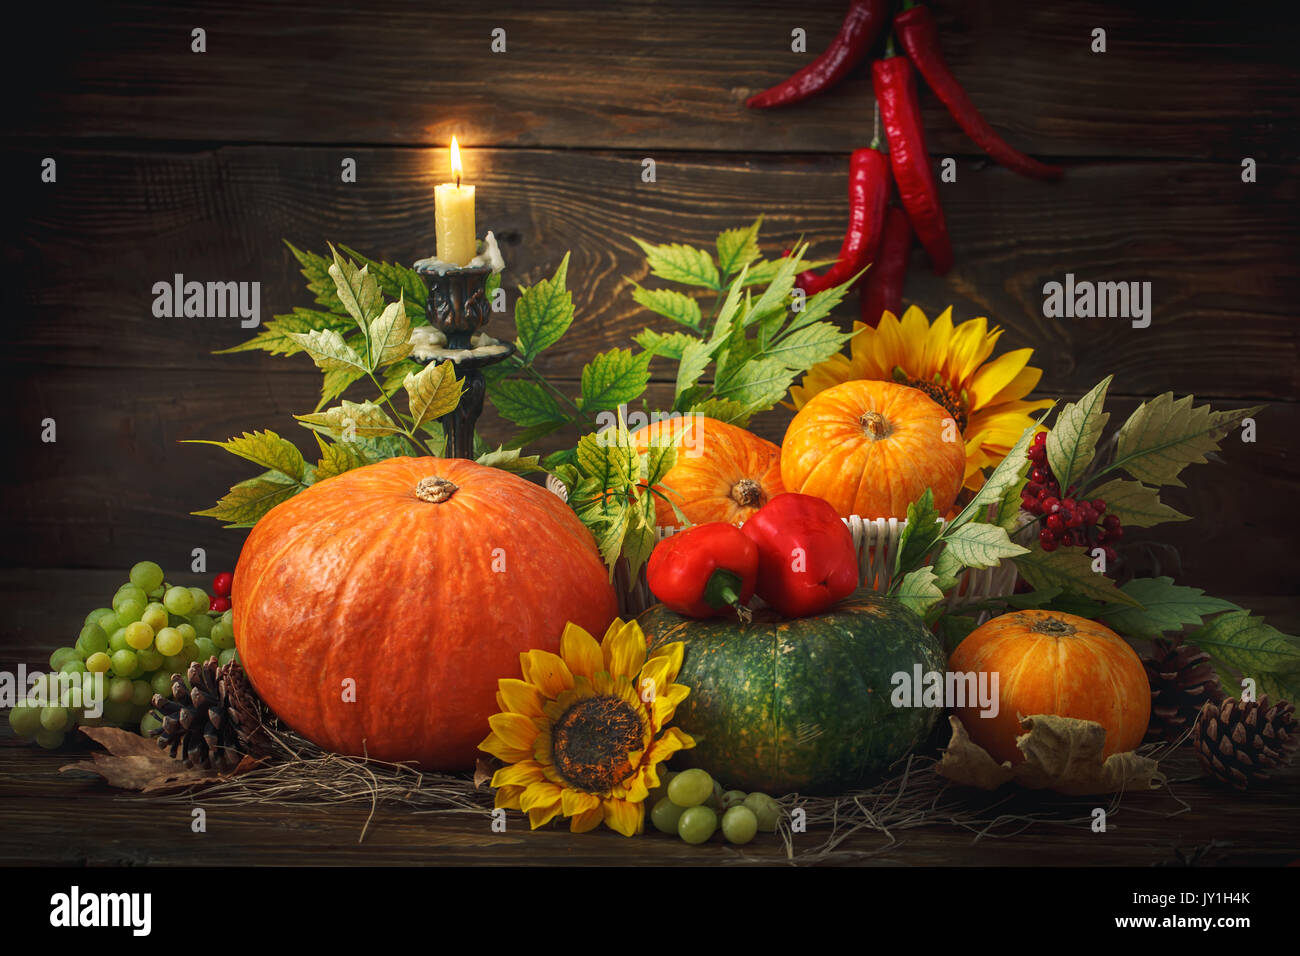 Happy Thanksgiving Day background, wooden table, decorated with vegetables, fruits and autumn leaves. Autumn background. - Stock Image